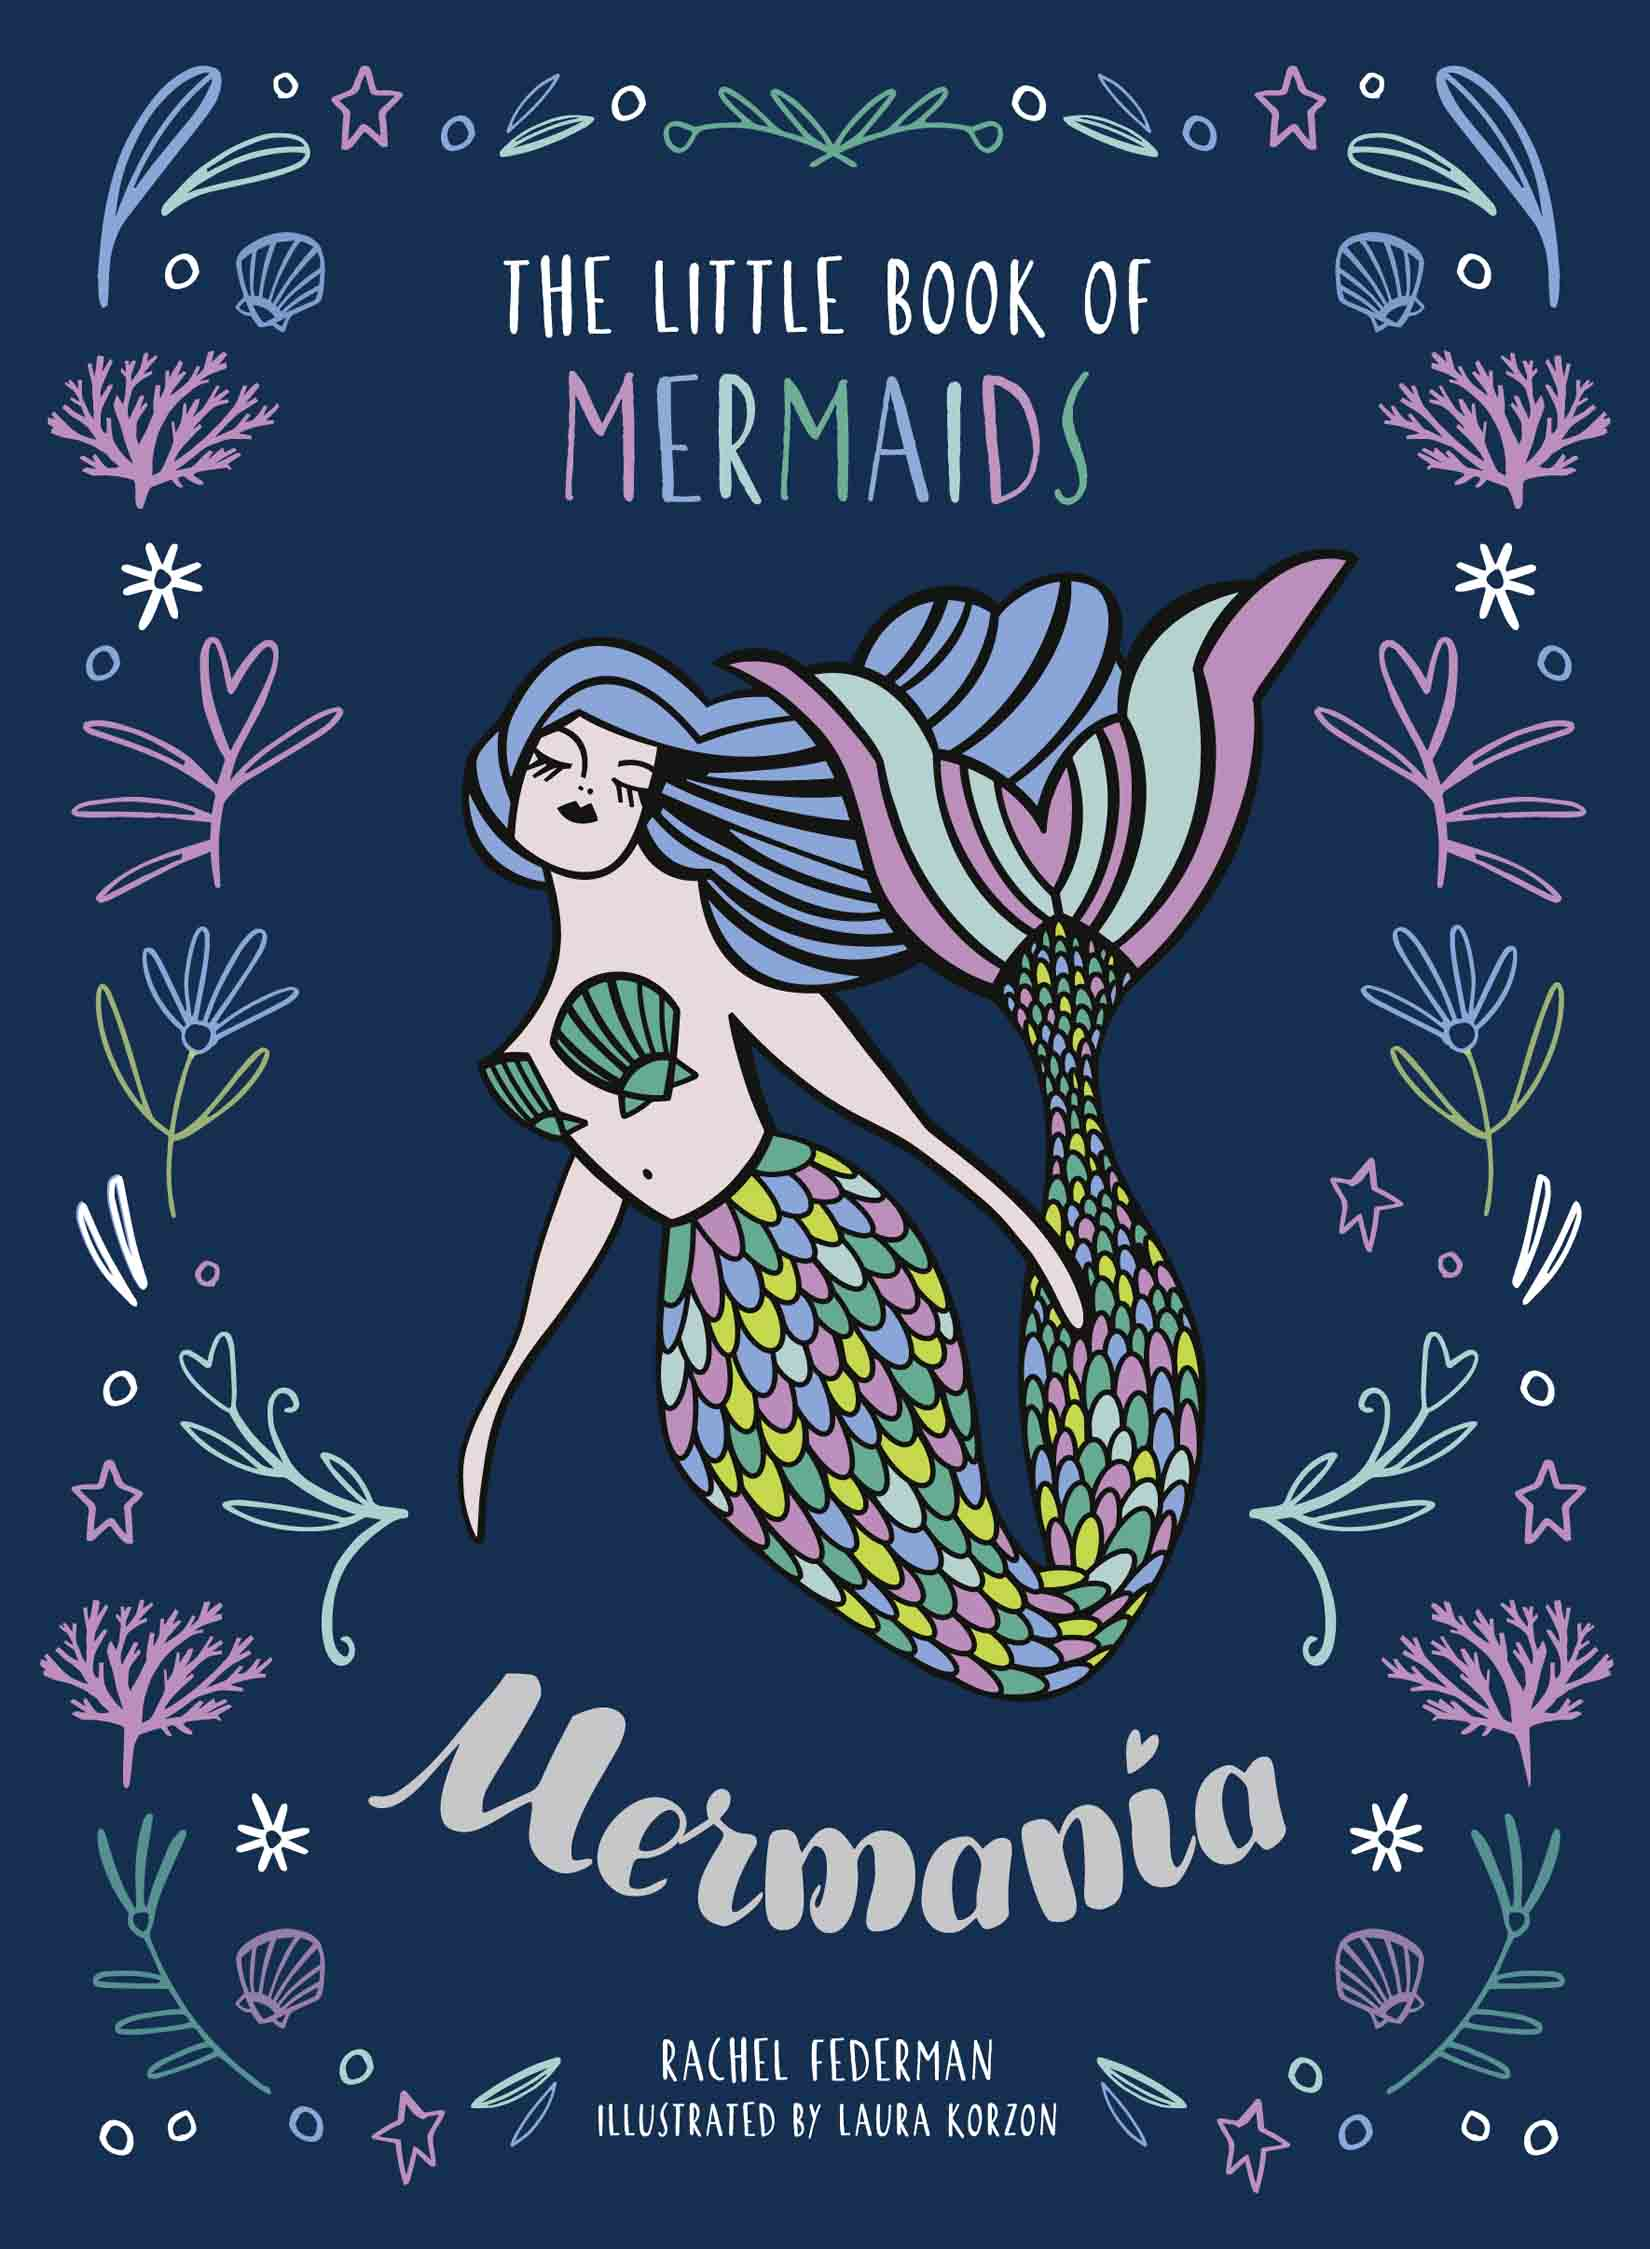 Rachel Federman Mermania: The Little Book of Mermaids maximillien de lafayette the banned book of sorcery spells magic and witchcraft